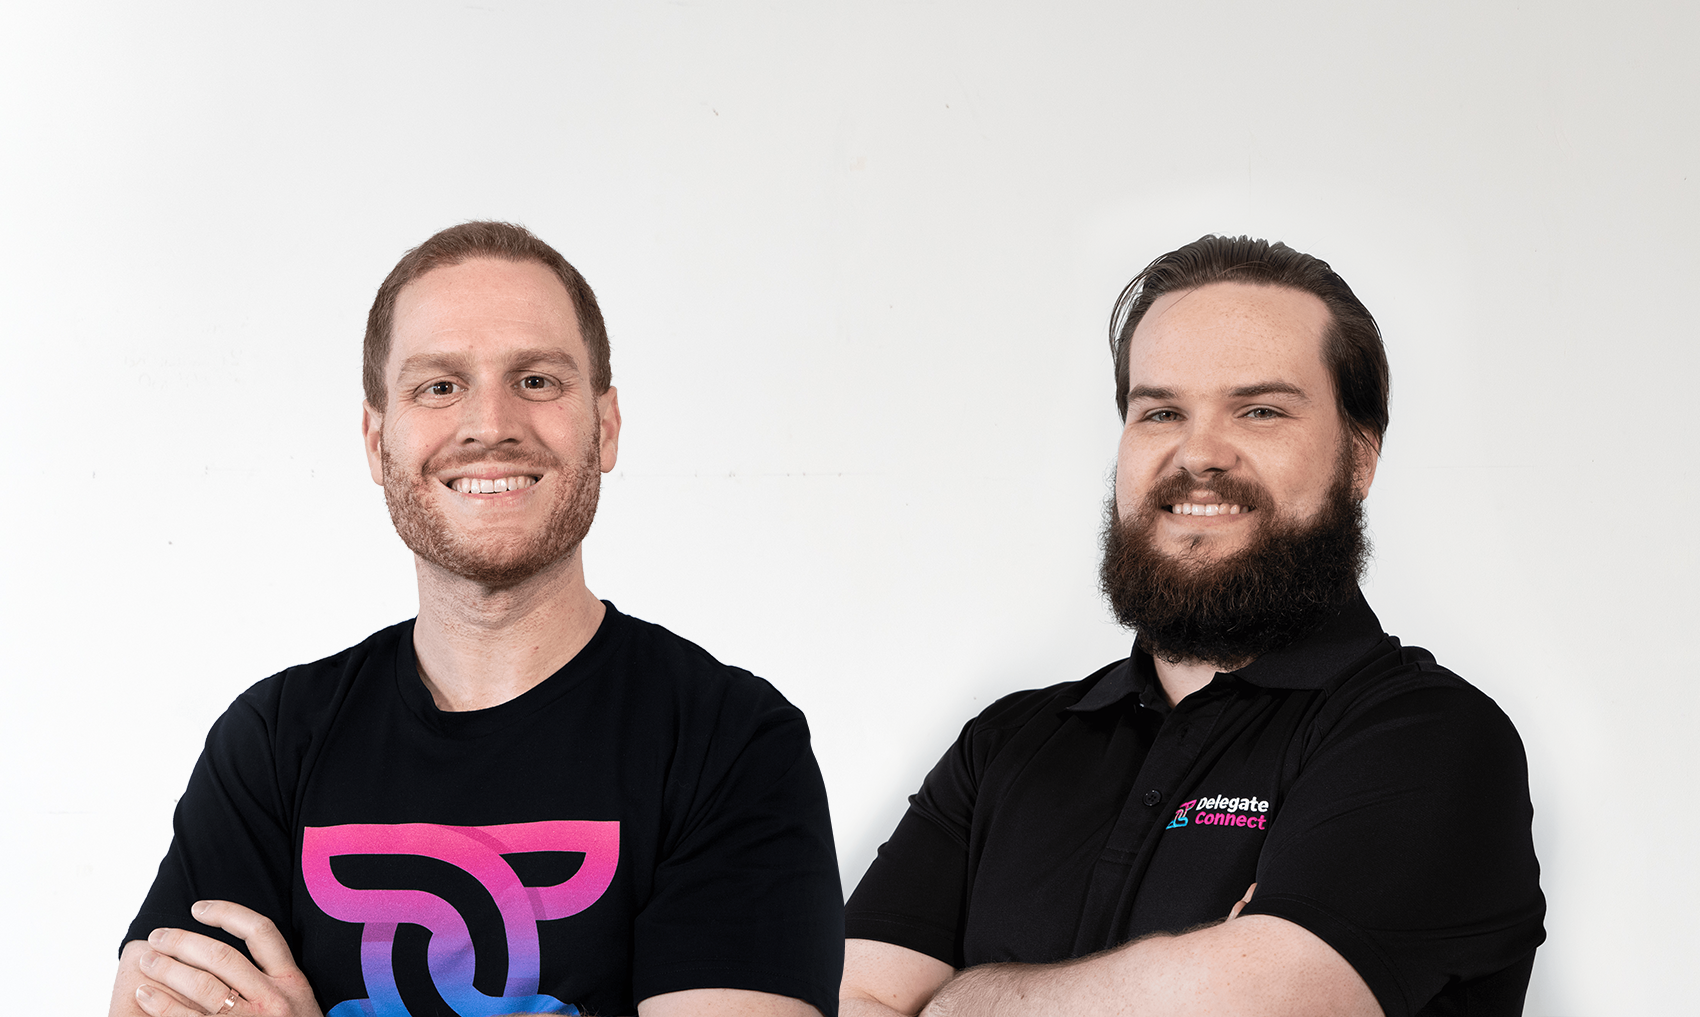 Delegate Connect founders Jordan Walsh and Jacob Thomas